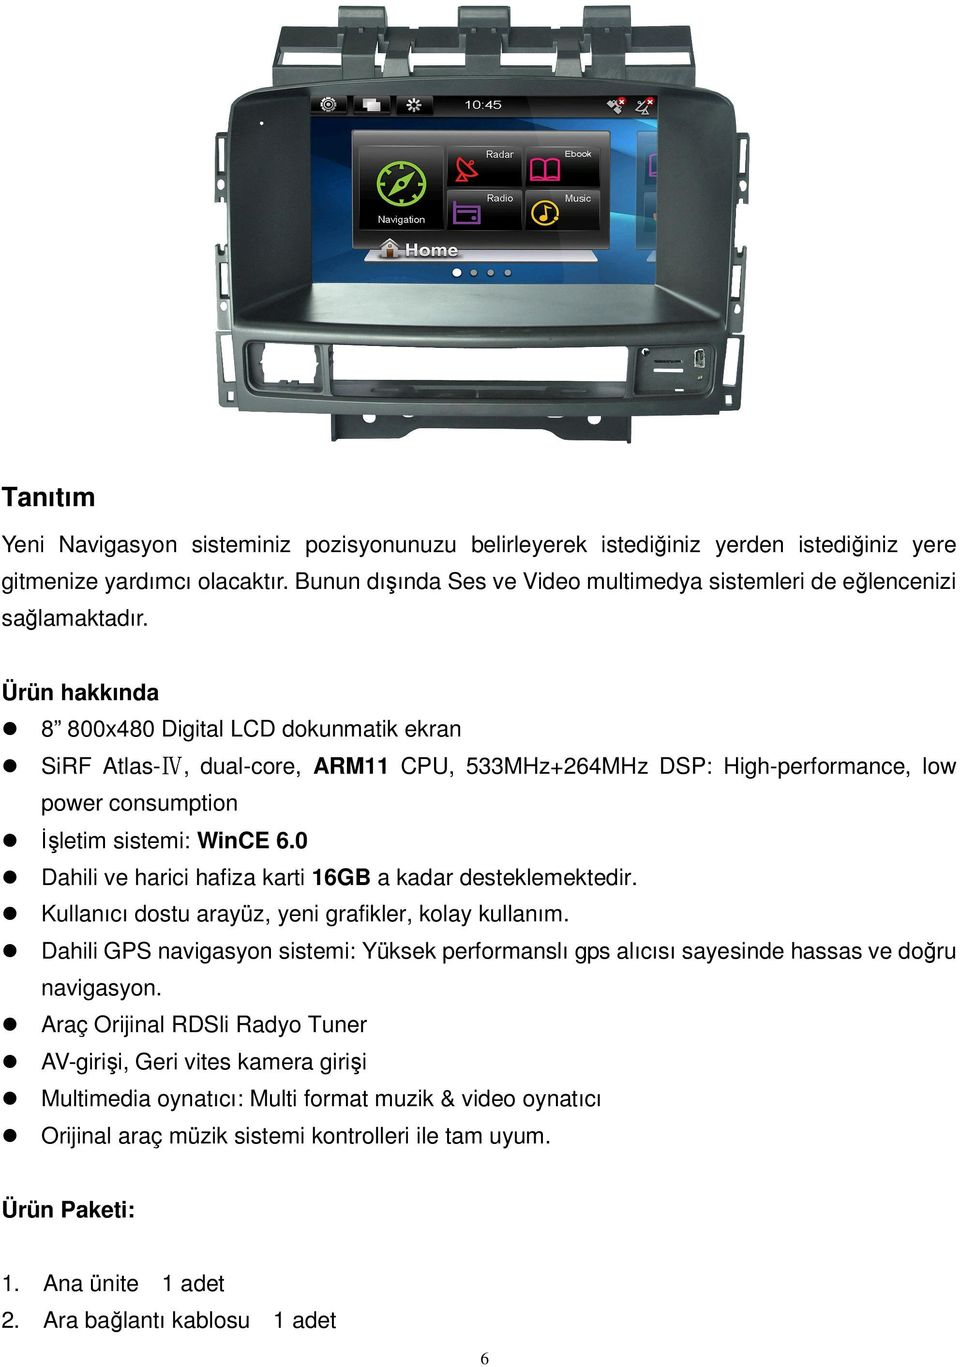 Ürün hakkında 8 800x480 Digital LCD dokunmatik ekran SiRF Atlas-Ⅳ, dual-core, ARM11 CPU, 533MHz+264MHz DSP: High-performance, low power consumption İşletim sistemi: WinCE 6.